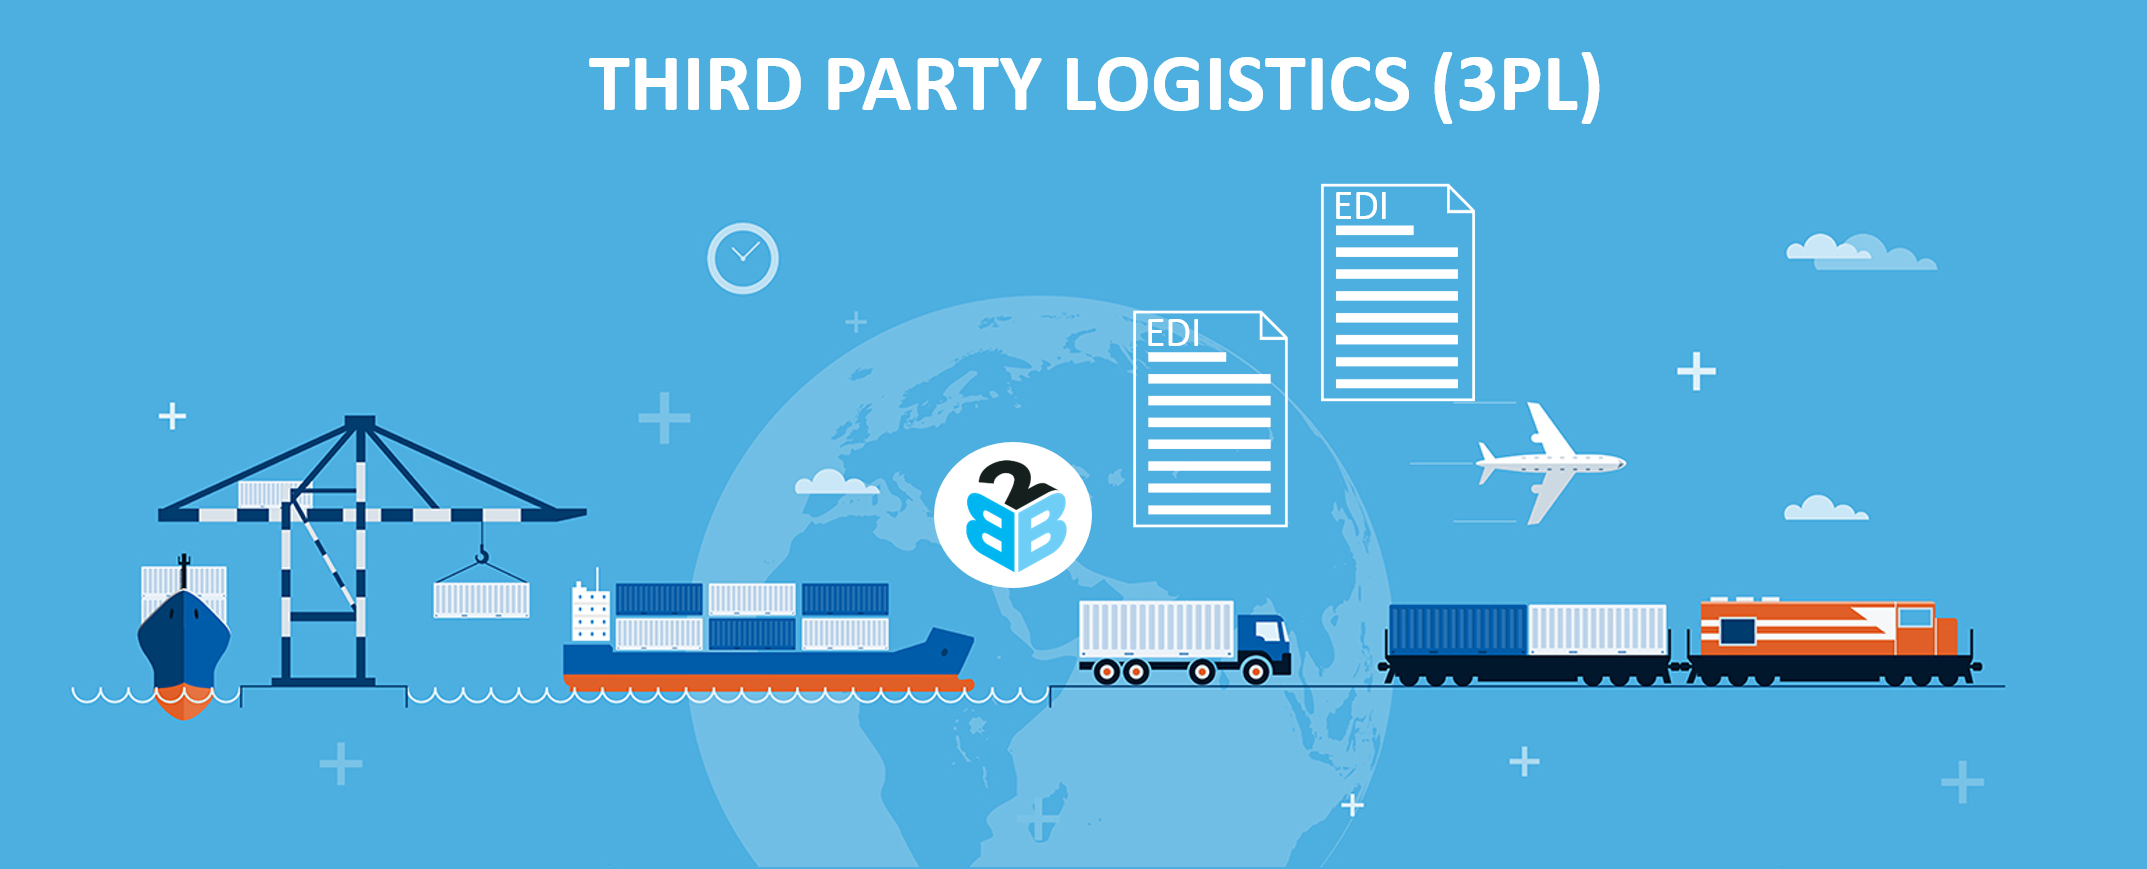 Edi For Third Party Logistics 3pl Companies B2bgateway